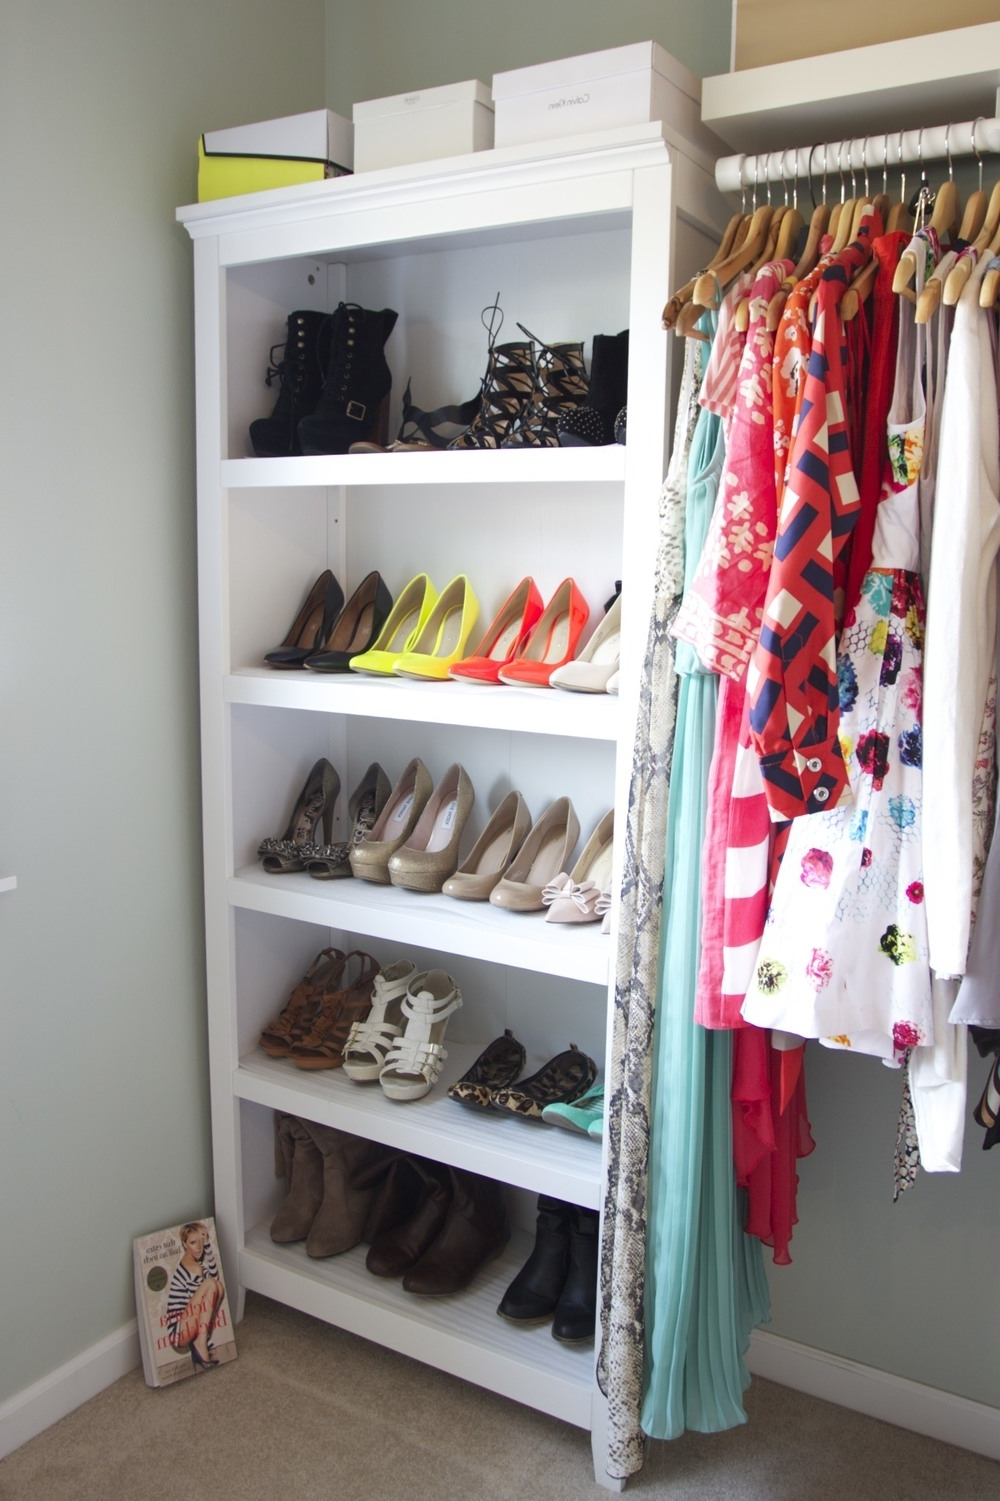 Widely Used Carson 5 Shelf Bookcases With Regard To Welcome To The Closet — In Jen's Life (View 11 of 15)